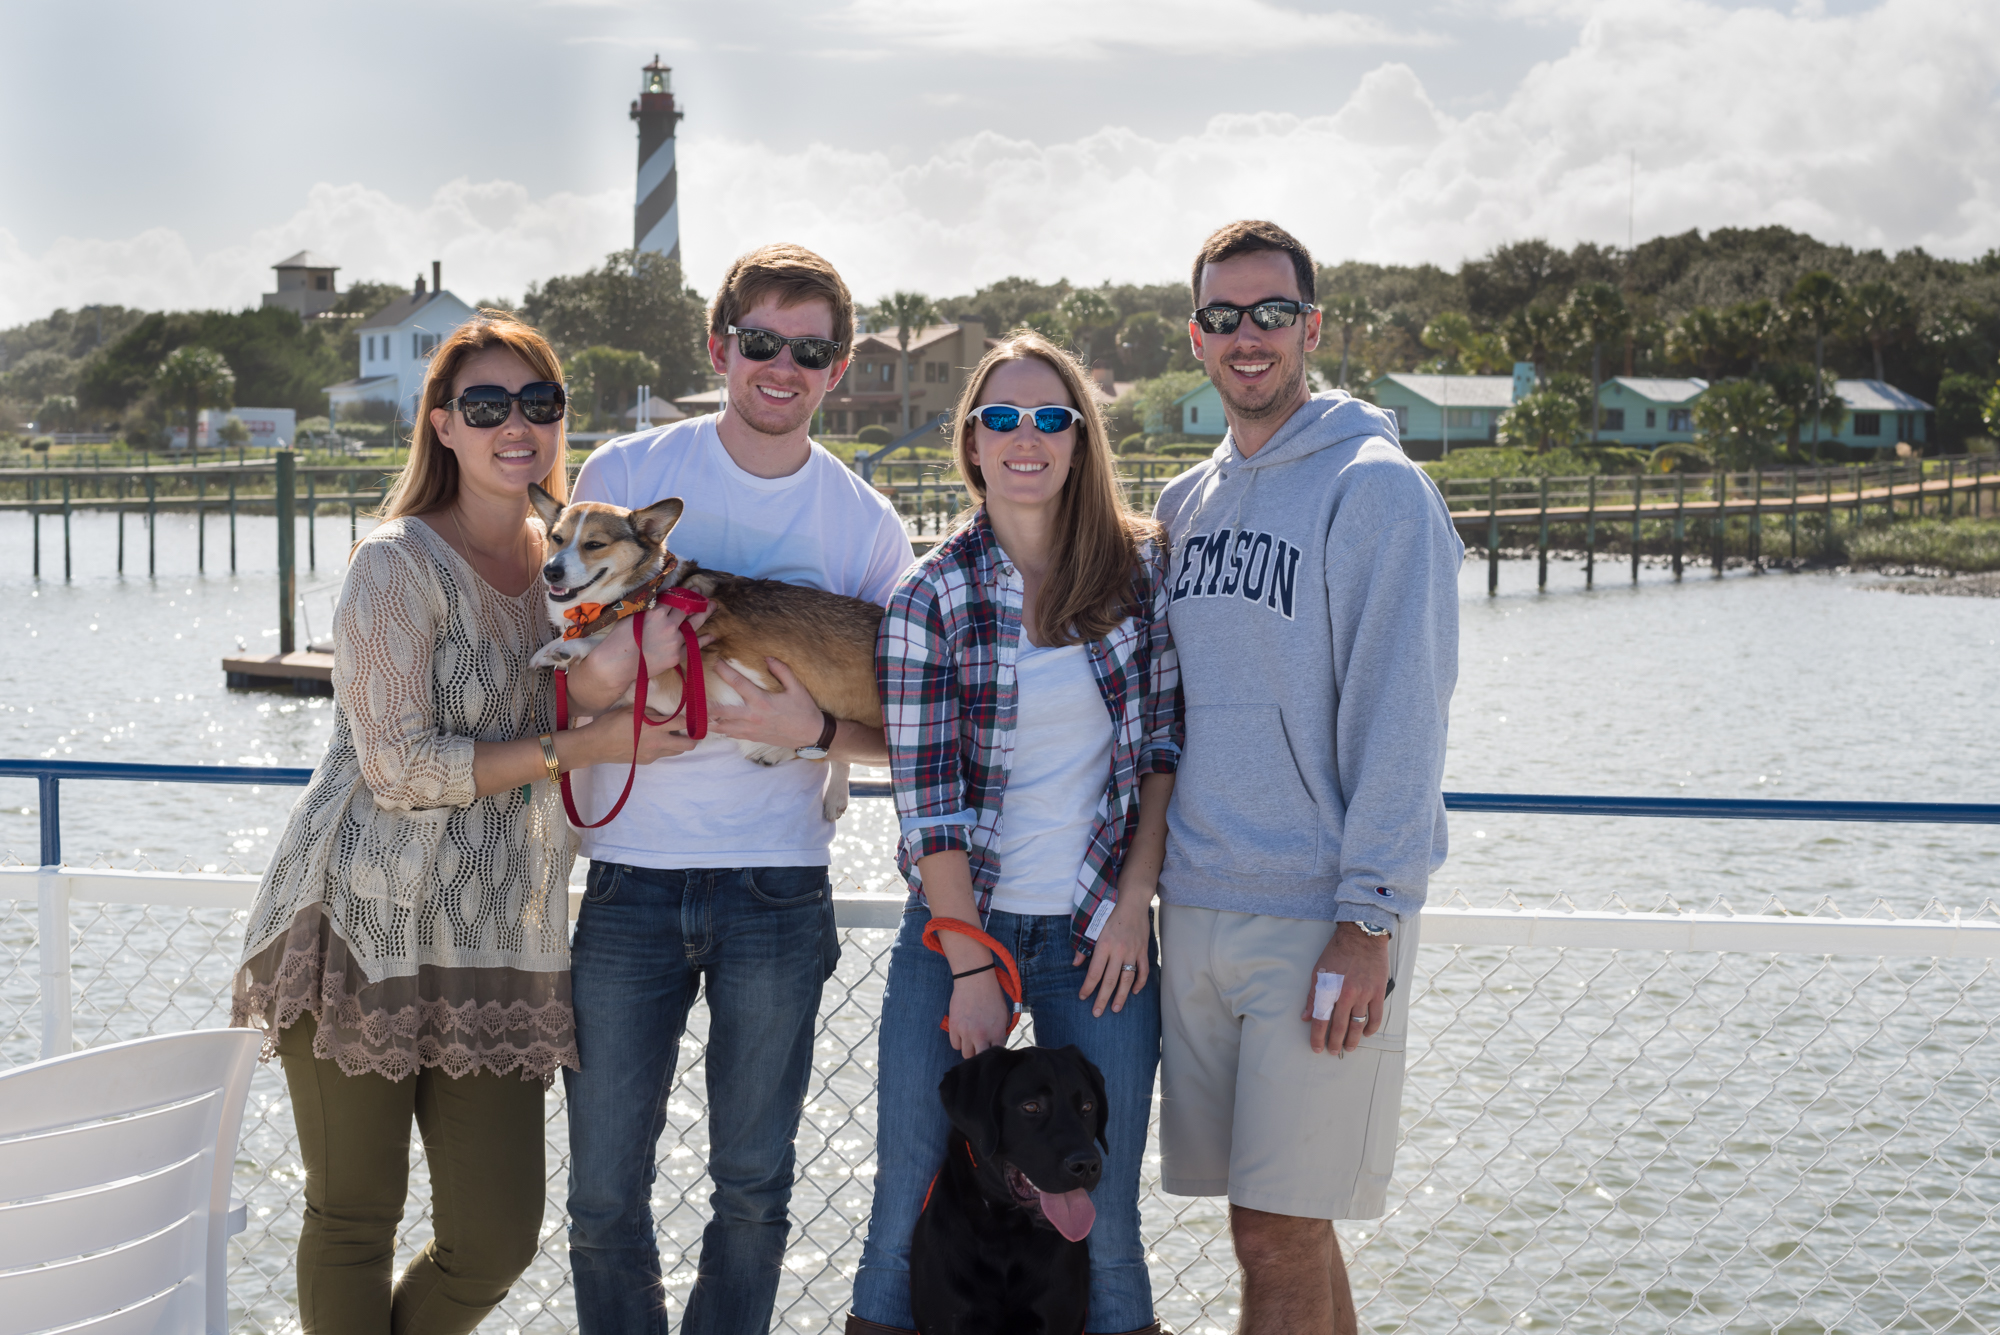 ST. AUGUSTINE SCENIC CRUISE